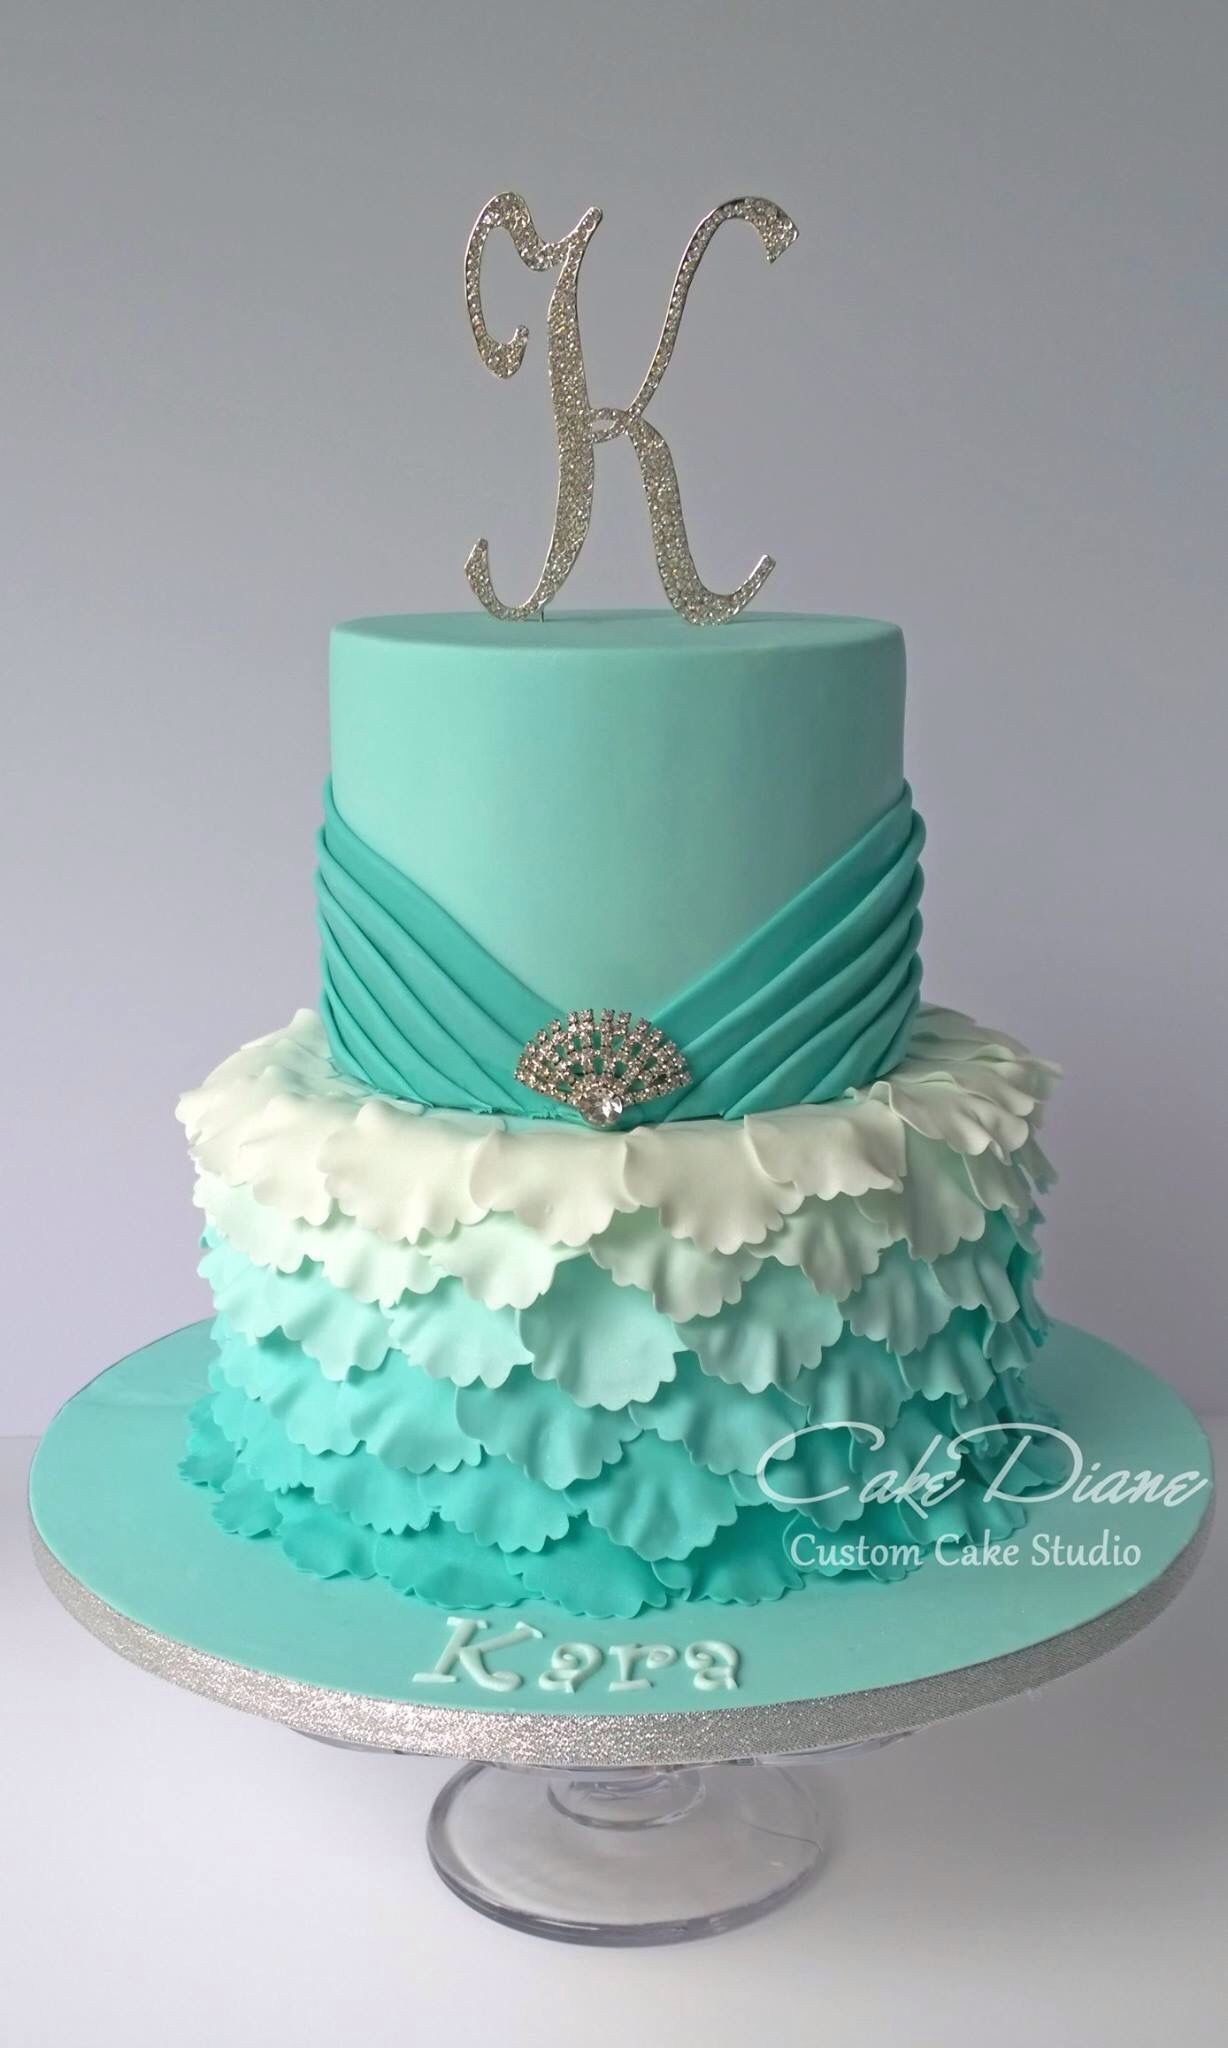 Terrific 21 Beautiful Image Of 15 Birthday Cakes With Images Sweet 16 Funny Birthday Cards Online Barepcheapnameinfo